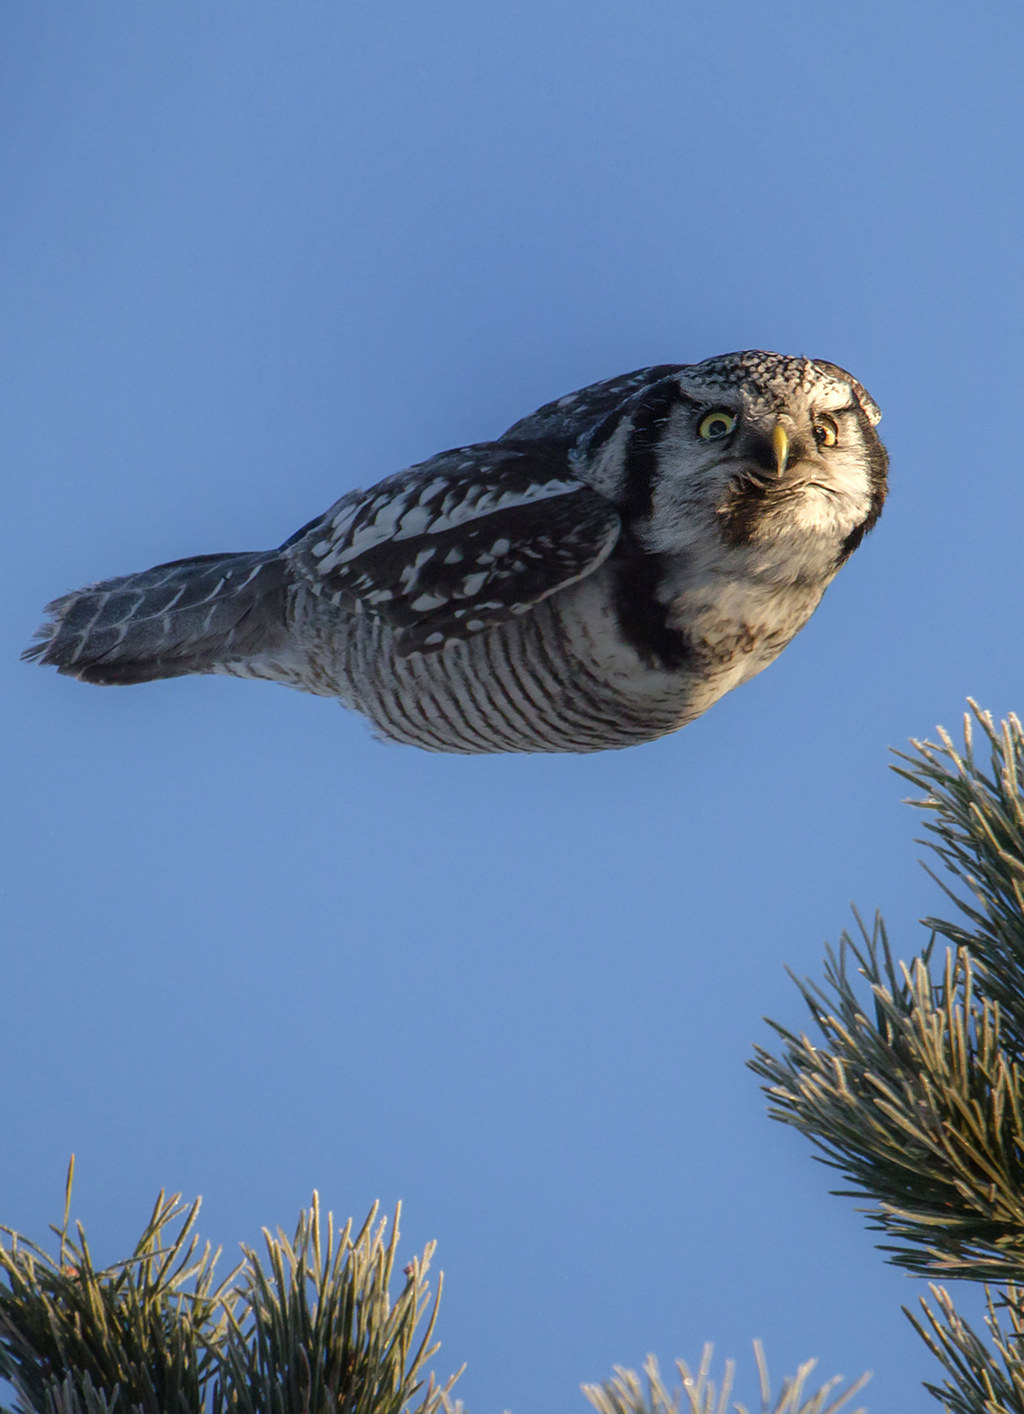 This is The Coolest Goddamn Owl You Will See Today